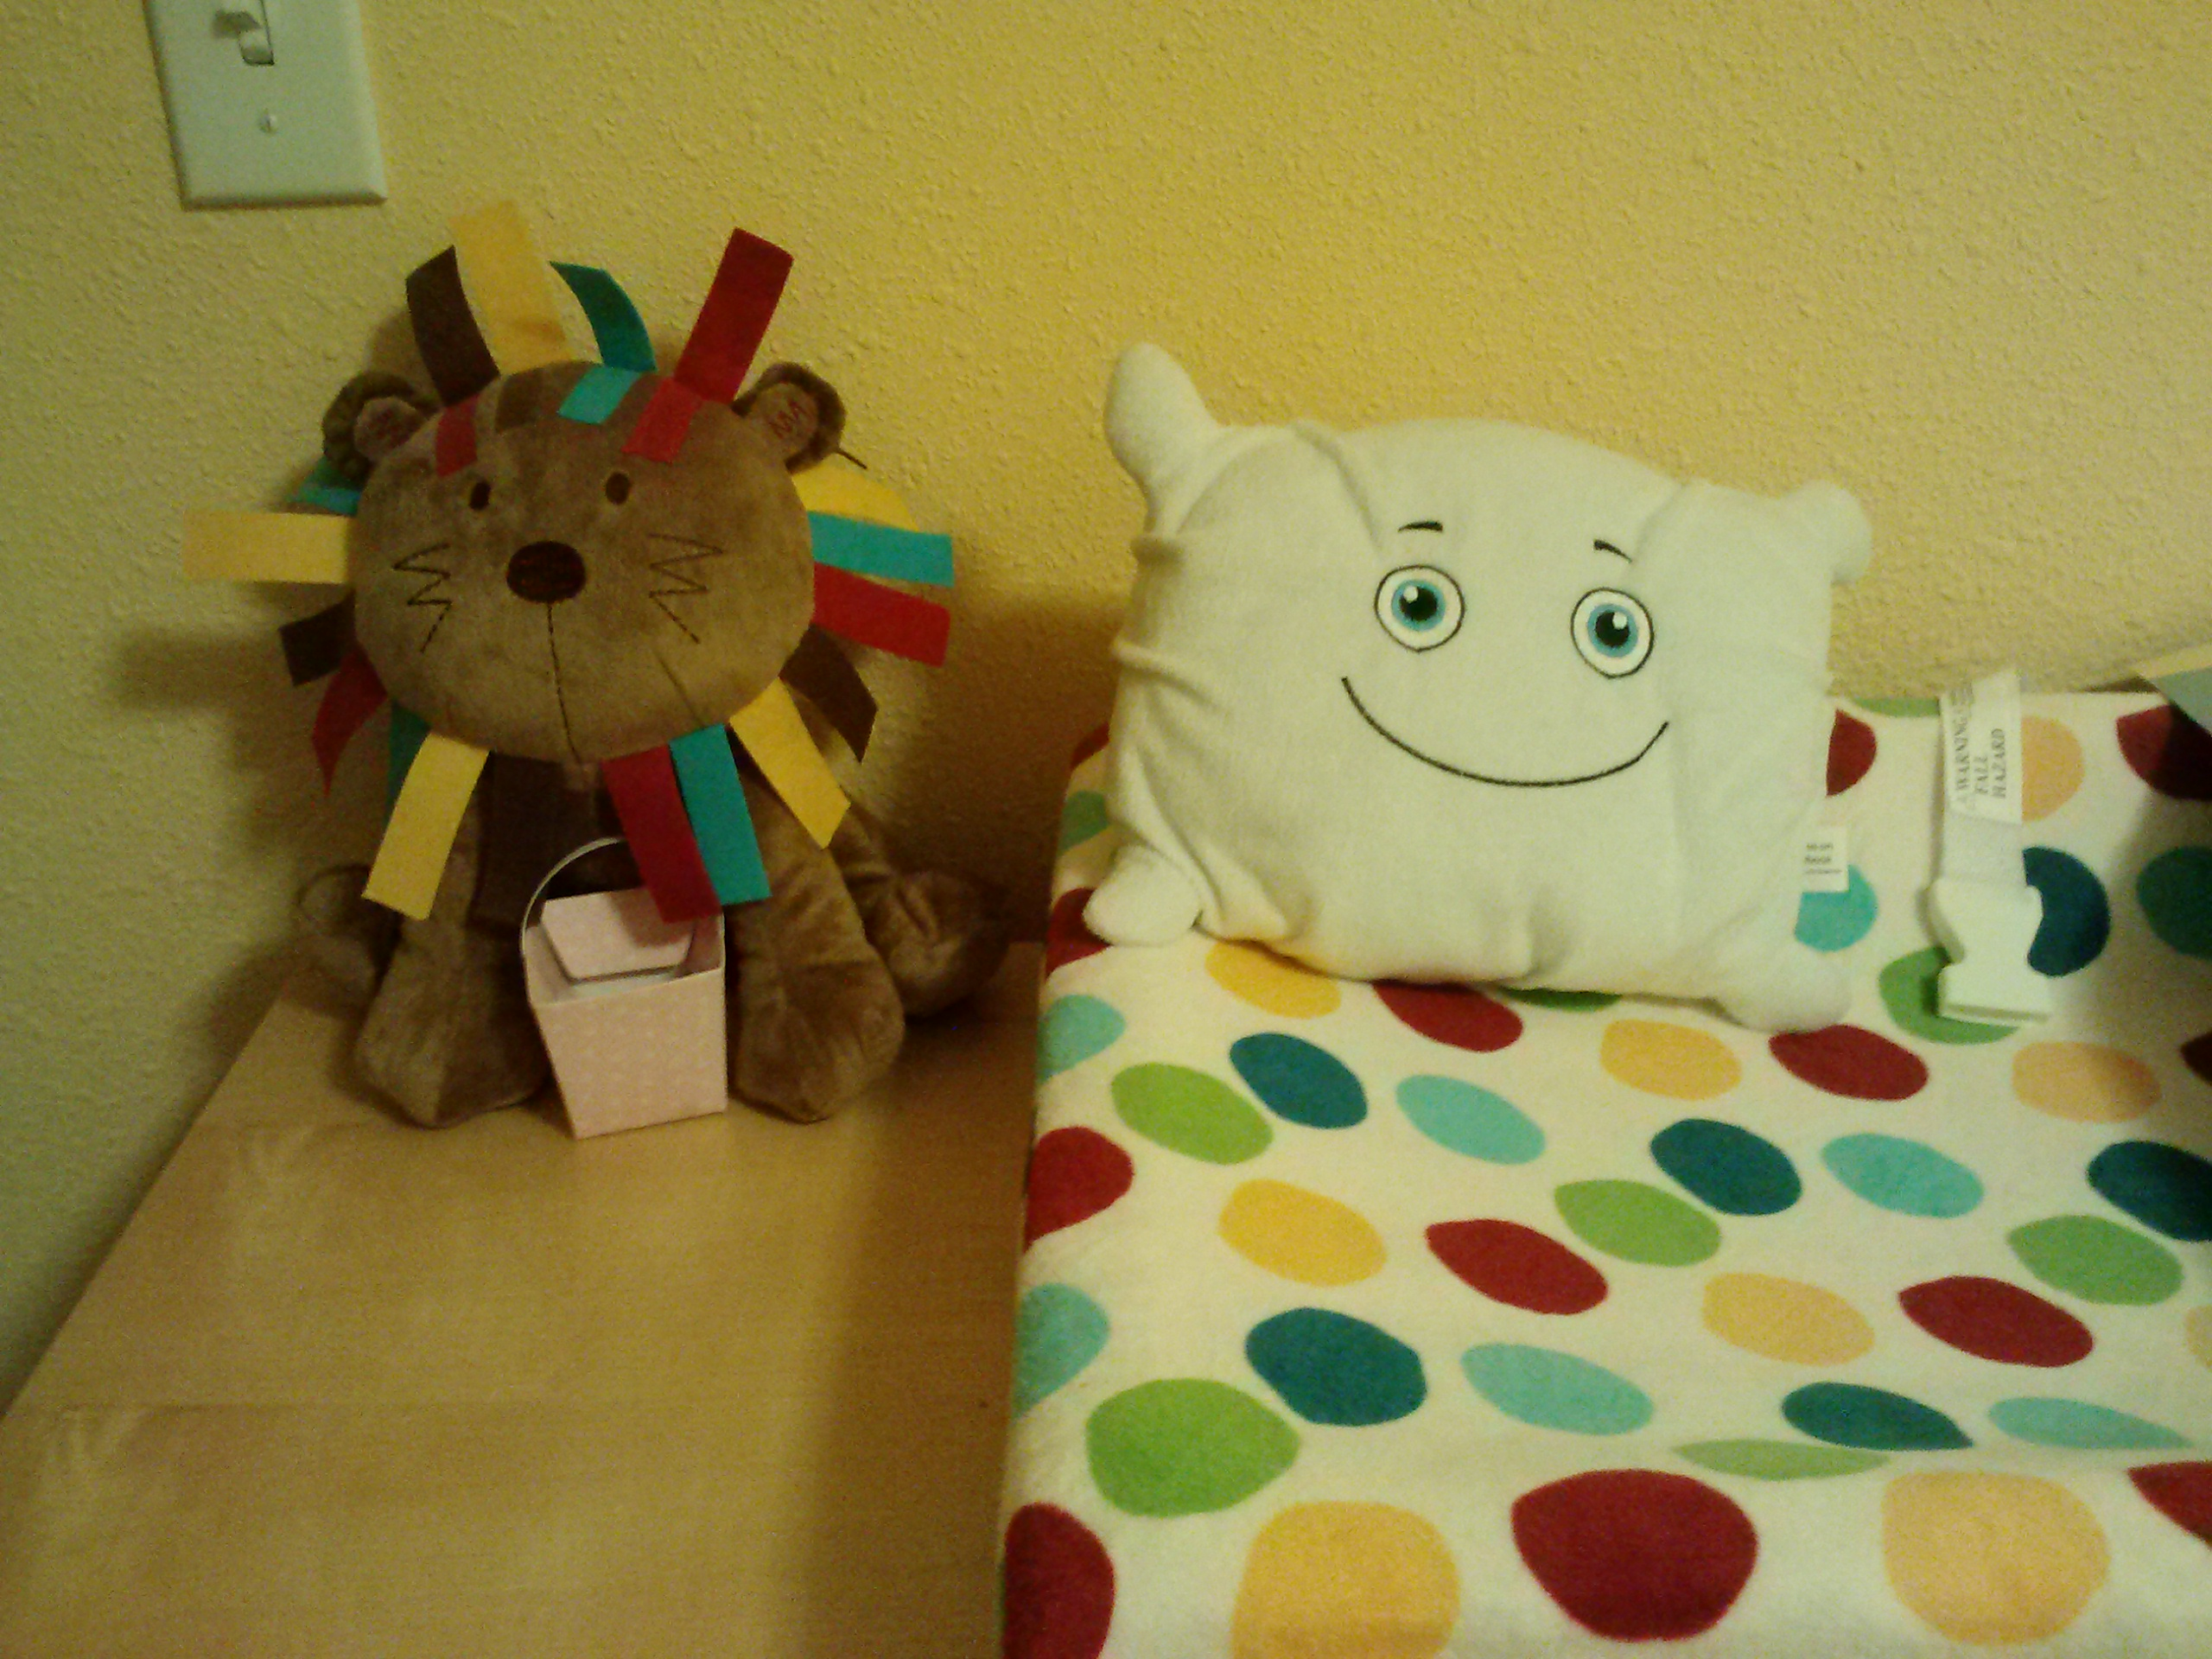 McStuffy O'Fluffigan is looking cute as ever while helping tidy up the baby changing table